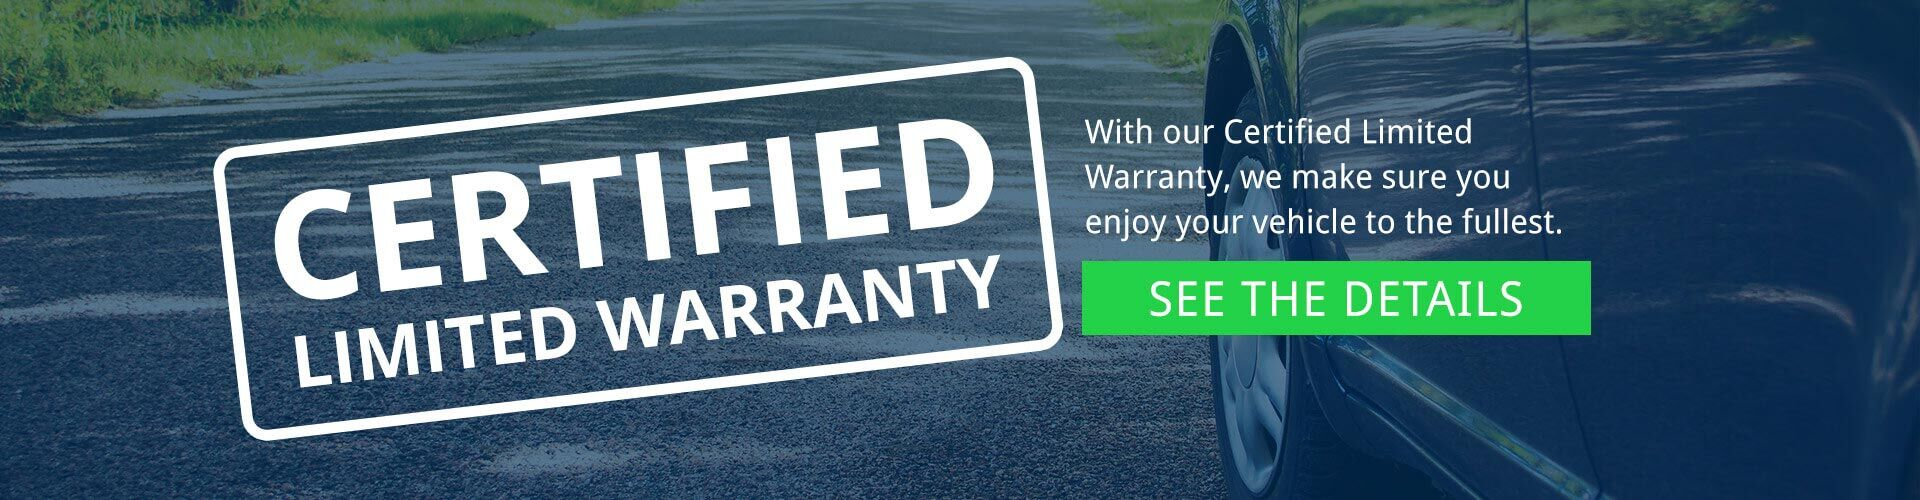 Certified Limited Vehicle Warranty Miami FL